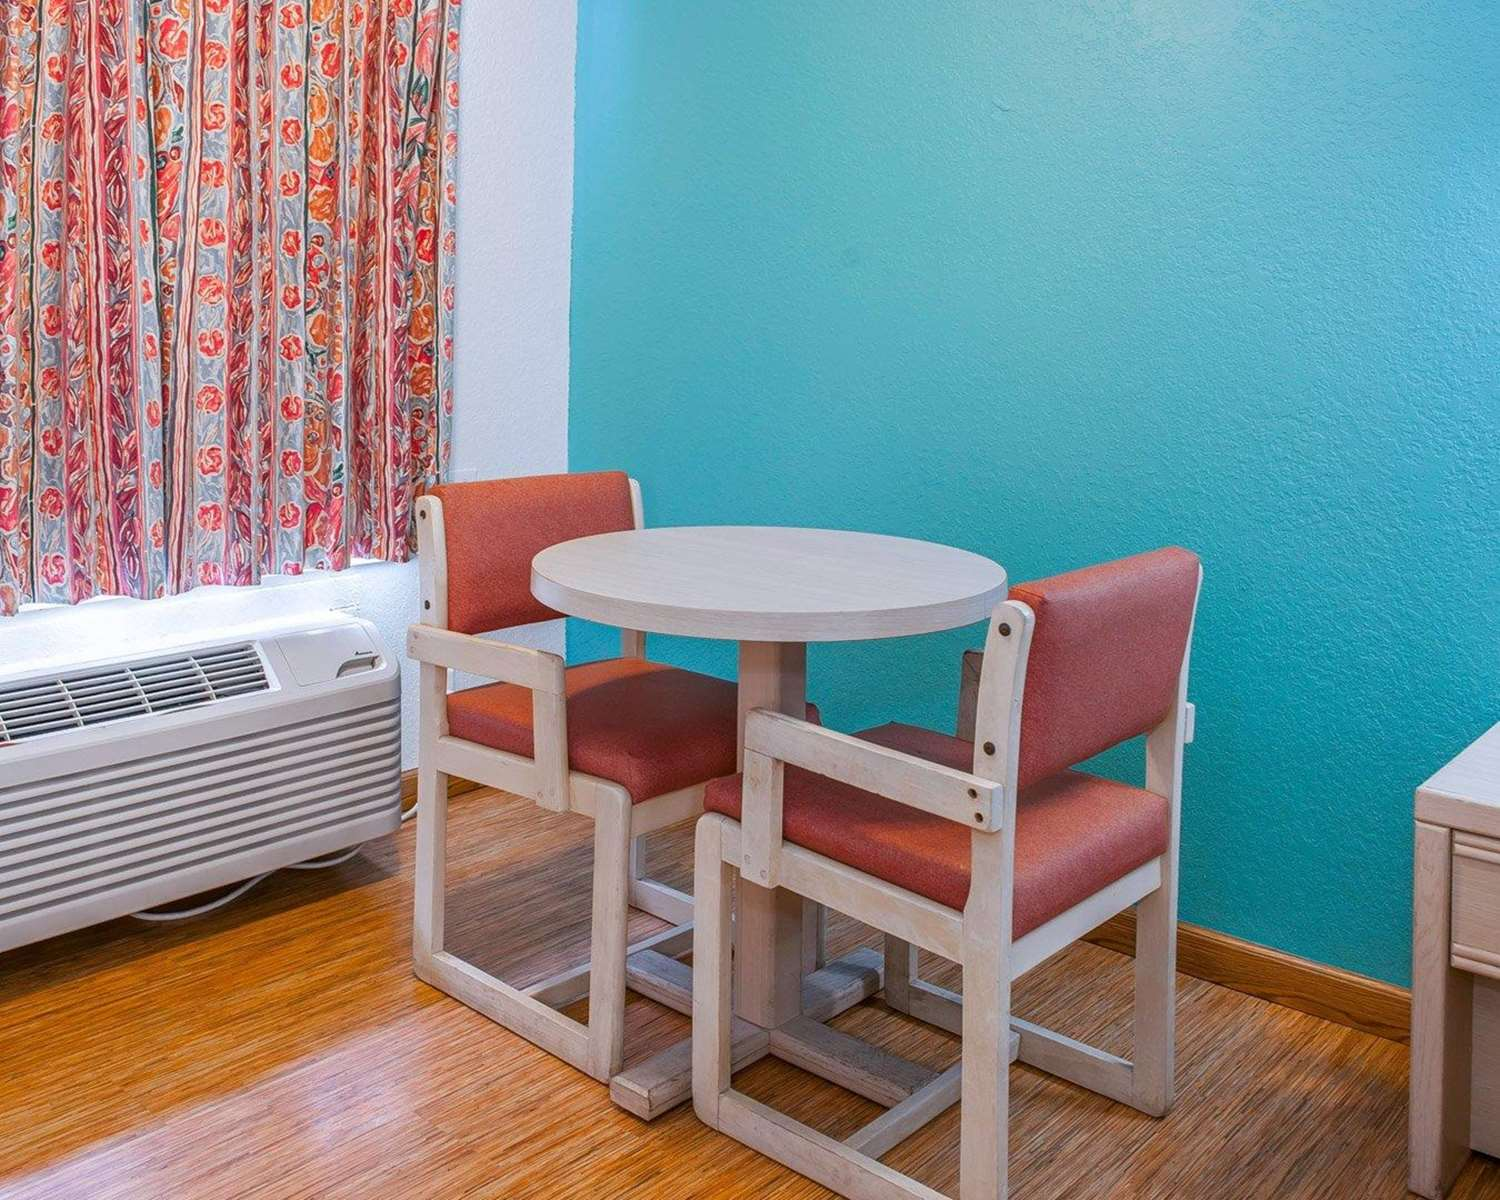 Guest room with table and chairs